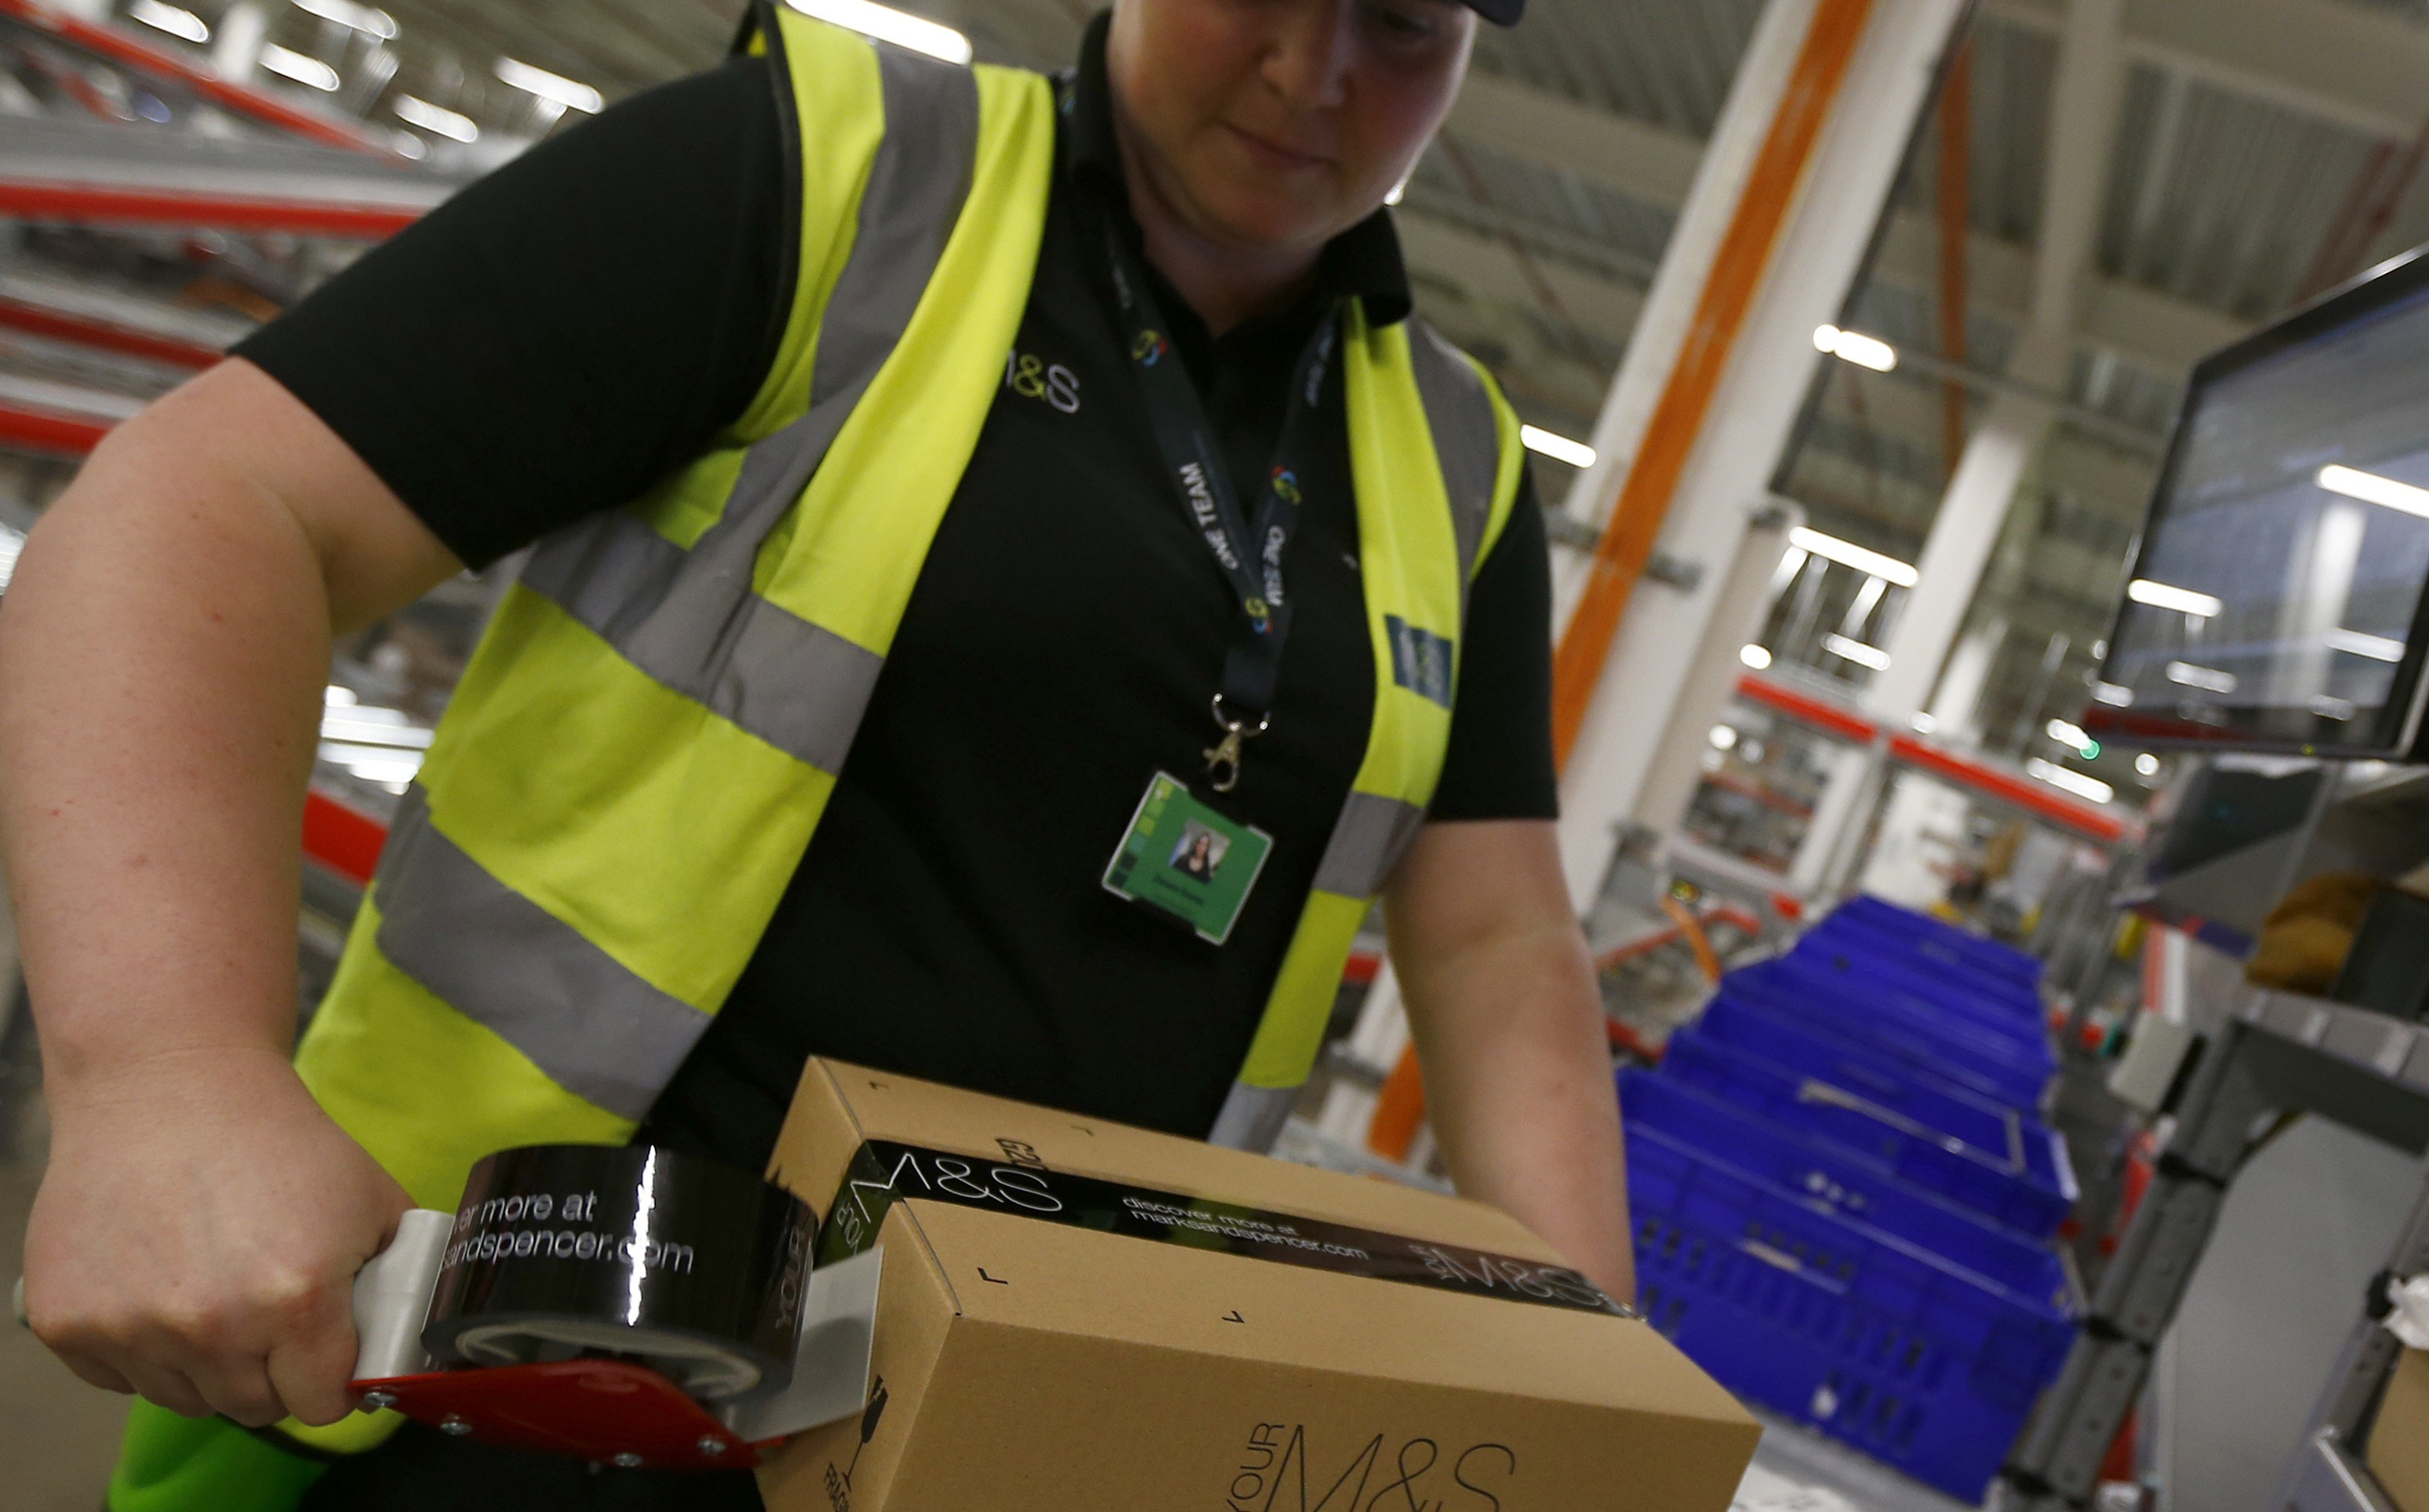 A worker boxes goods at the new Marks & Spencer e-commerce distribution centre in Castle Donington, central England May 8, 2013. The company was updating on its supply chain and IT investment programme, on Wednesday, to the media and to investors.   REUTERS/Darren Staples   (BRITAIN - Tags: BUSINESS) - RTXZF82